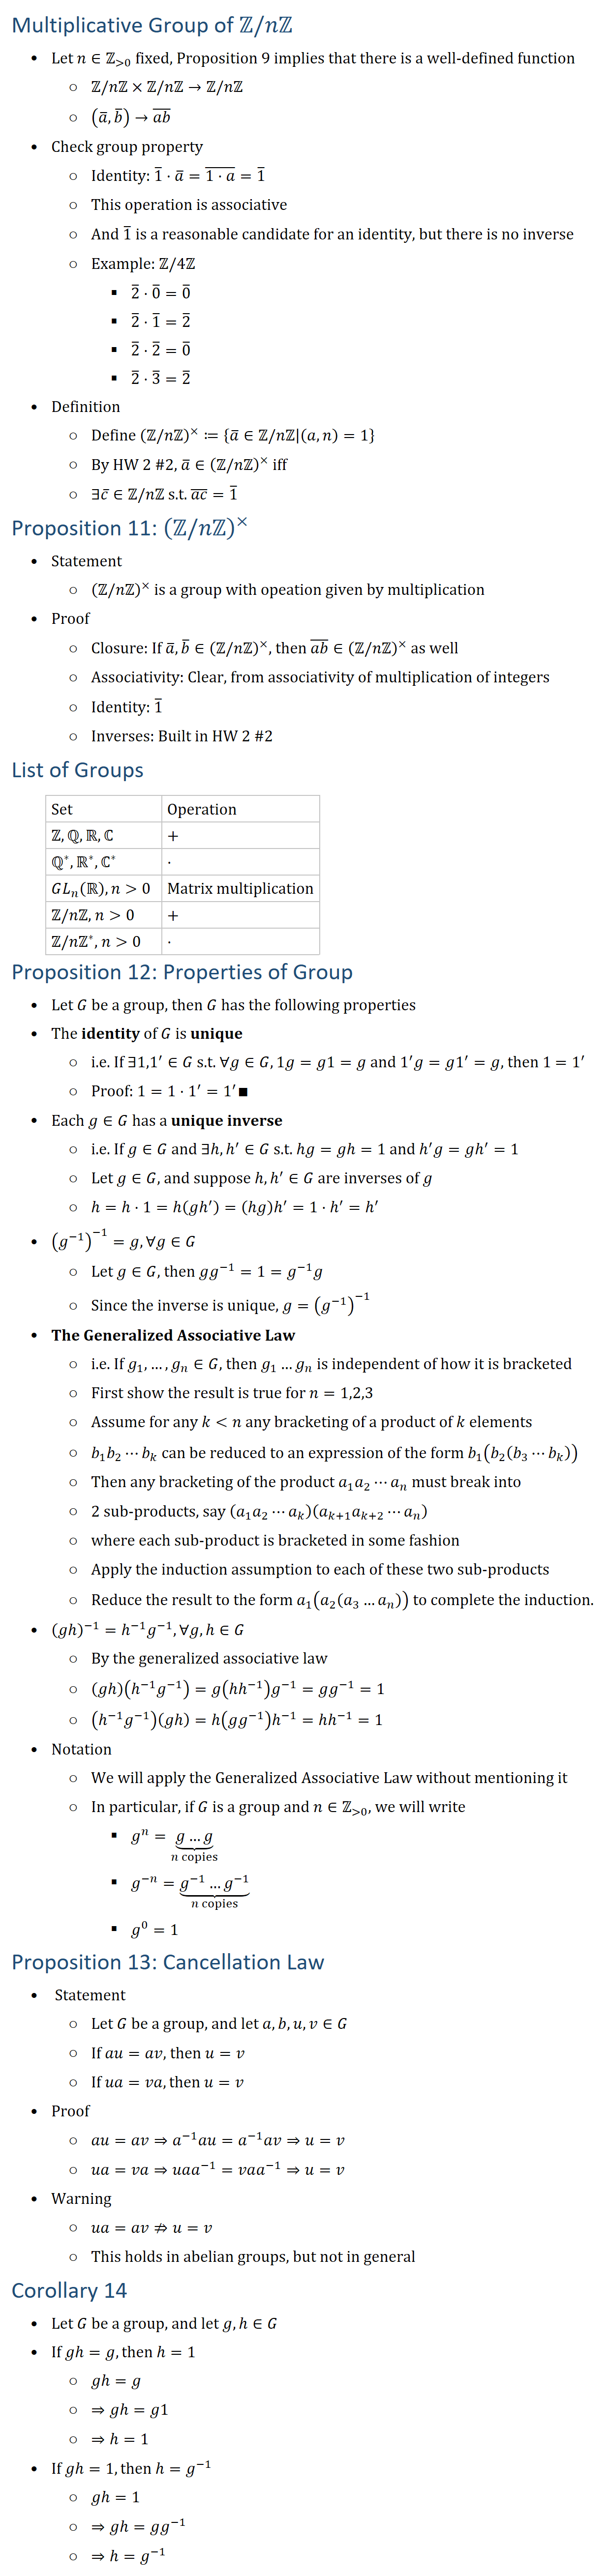 Multiplicative Group of Z\/nZ • Let n∈Z( 0) fixed, Proposition 9 implies that there is a well-defined function ○ Z\/nZ×Z\/nZ→Z\/nZ ○ (a ̅,b ̅ )→(ab) ̅ • Check group property ○ Identity: 1 ̅⋅a ̅=(1⋅a) ̅=1 ̅ ○ This operation is associative ○ And 1 ̅ is a reasonable candidate for an identity, but there is no inverse ○ Example: Z\/4Z § 2 ̅⋅0 ̅=0 ̅ § 2 ̅⋅1 ̅=2 ̅ § 2 ̅⋅2 ̅=0 ̅ § 2 ̅⋅3 ̅=2 ̅ • Definition ○ Define (ZnZ^×≔{a ̅∈ZnZ(a,n)=1} ○ By HW 2 #2, a ̅∈(ZnZ^× iff ○ ∃c ̅∈Z\/nZ s.t. (ac) ̅=1 ̅ Proposition 11: (ZnZ^× • Statement ○ (ZnZ^× is a group with opeation given by multiplication • Proof ○ Closure: If a ̅,b ̅∈(ZnZ^×, then (ab) ̅∈(ZnZ^× as well ○ Associativity: Clear, from associativity of multiplication of integers ○ Identity: 1 ̅ ○ Inverses: Built in HW 2 #2 List of Groups Set Operation Z,Q,R,ℂ + Q∗,R∗,ℂ^∗ ⋅ GL_n (R, n 0 Matrix multiplication Z\/nZ, n 0 + 〖Z/nZ^∗, n 0 ⋅ Proposition 12: Properties of Group • Let G be a group, then G has the following properties • The identity of G is unique ○ i.e. If ∃〖1,1〗^′∈G s.t. ∀g∈G,1g=g1=g and 1^′ g=g1^′=g, then 1 =1^′ ○ Proof: 1=1⋅1^′=1^′∎ • Each g∈G has a unique inverse ○ i.e. If g∈G and ∃h,h′∈G s.t. hg=gh=1 and h′ g=gh′=1 ○ Let g∈G, and suppose h,h′∈G are inverses of g ○ h=h⋅1=h(gh′ )=(h�) h′=1⋅h′=h′ • (g^(−1) )^(−1)=g, ∀g∈G ○ Let g∈G, then gg^(−1)=1=g^(−1) g ○ Since the inverse is unique, g=(g^(−1) )^(−1) • The Generalized Associative Law ○ i.e. If g_1,…,g_n∈G, then g_1…g_n is independent of how it is bracketed ○ First show the result is true for n=1,2,3 ○ Assume for any k n any bracketing of a product of k elements ○ b_1 b_2⋯b_k can be reduced to an expression of the form b_1 (b_2 (b_3⋯b_k )) ○ Then any bracketing of the product a_1 a_2⋯a_n must break into ○ 2 sub-products, say (a_1 a_2⋯a_k )(a_(k+1) a_(k+2)⋯a_n ) ○ where each sub-product is bracketed in some fashion ○ Apply the induction assumption to each of these two sub-products ○ Reduce the result to the form a_1 (a_2 (a_3…a_n )) to complete the induction. • (gh^(−1)=h